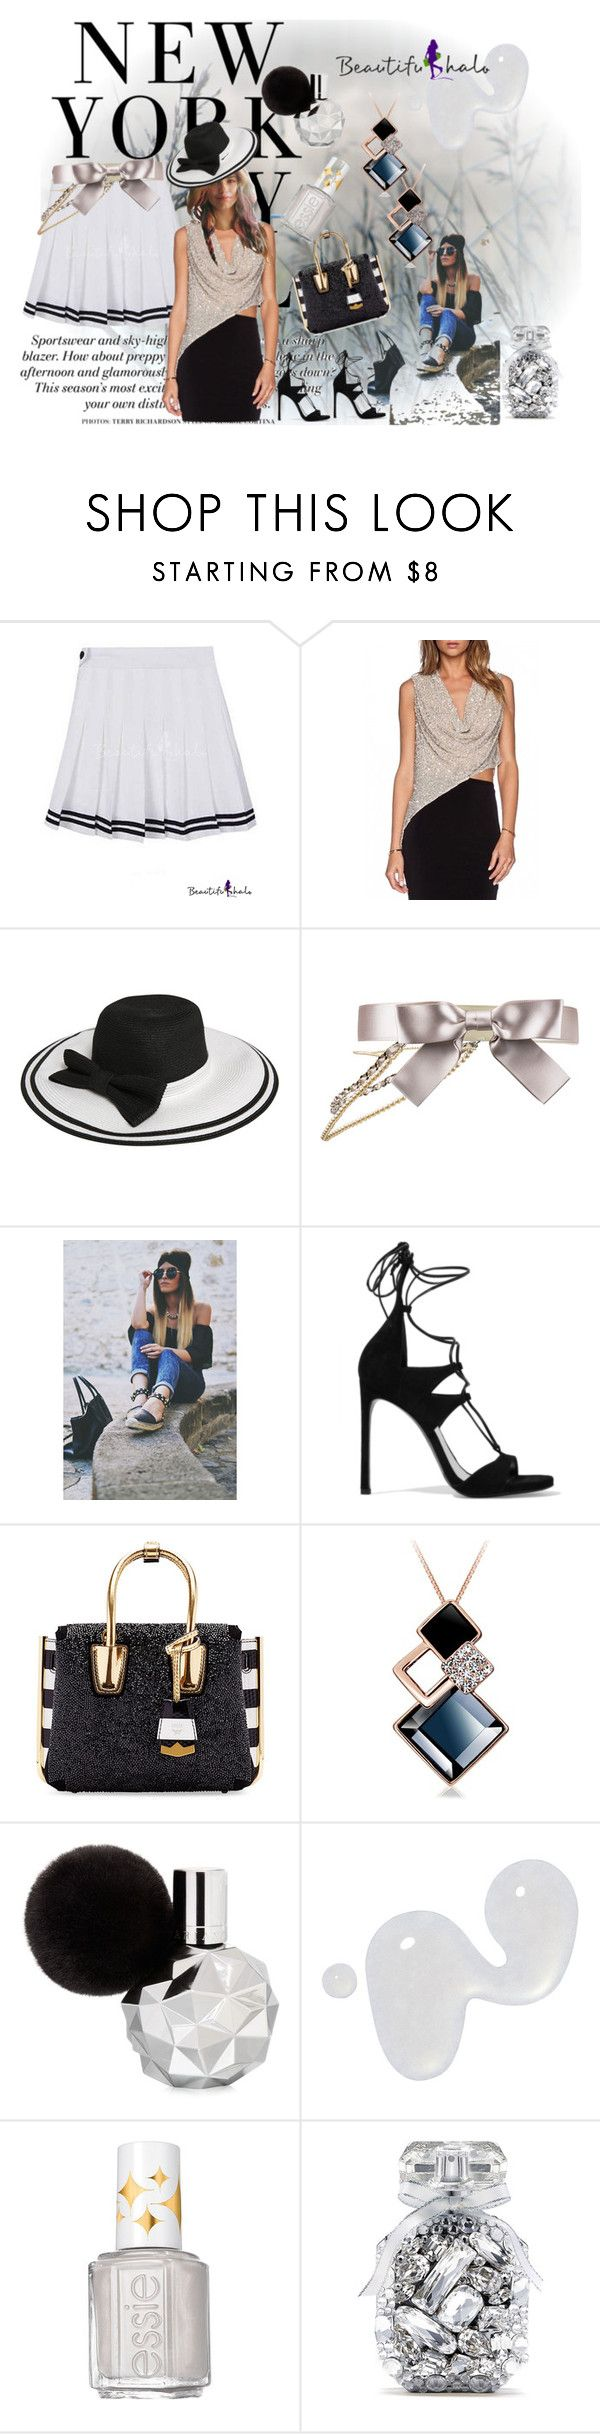 """bh"" by irinavsl ❤ liked on Polyvore featuring H&M, Chanel, Stuart Weitzman, MCM, Illamasqua, Essie and Victoria's Secret"